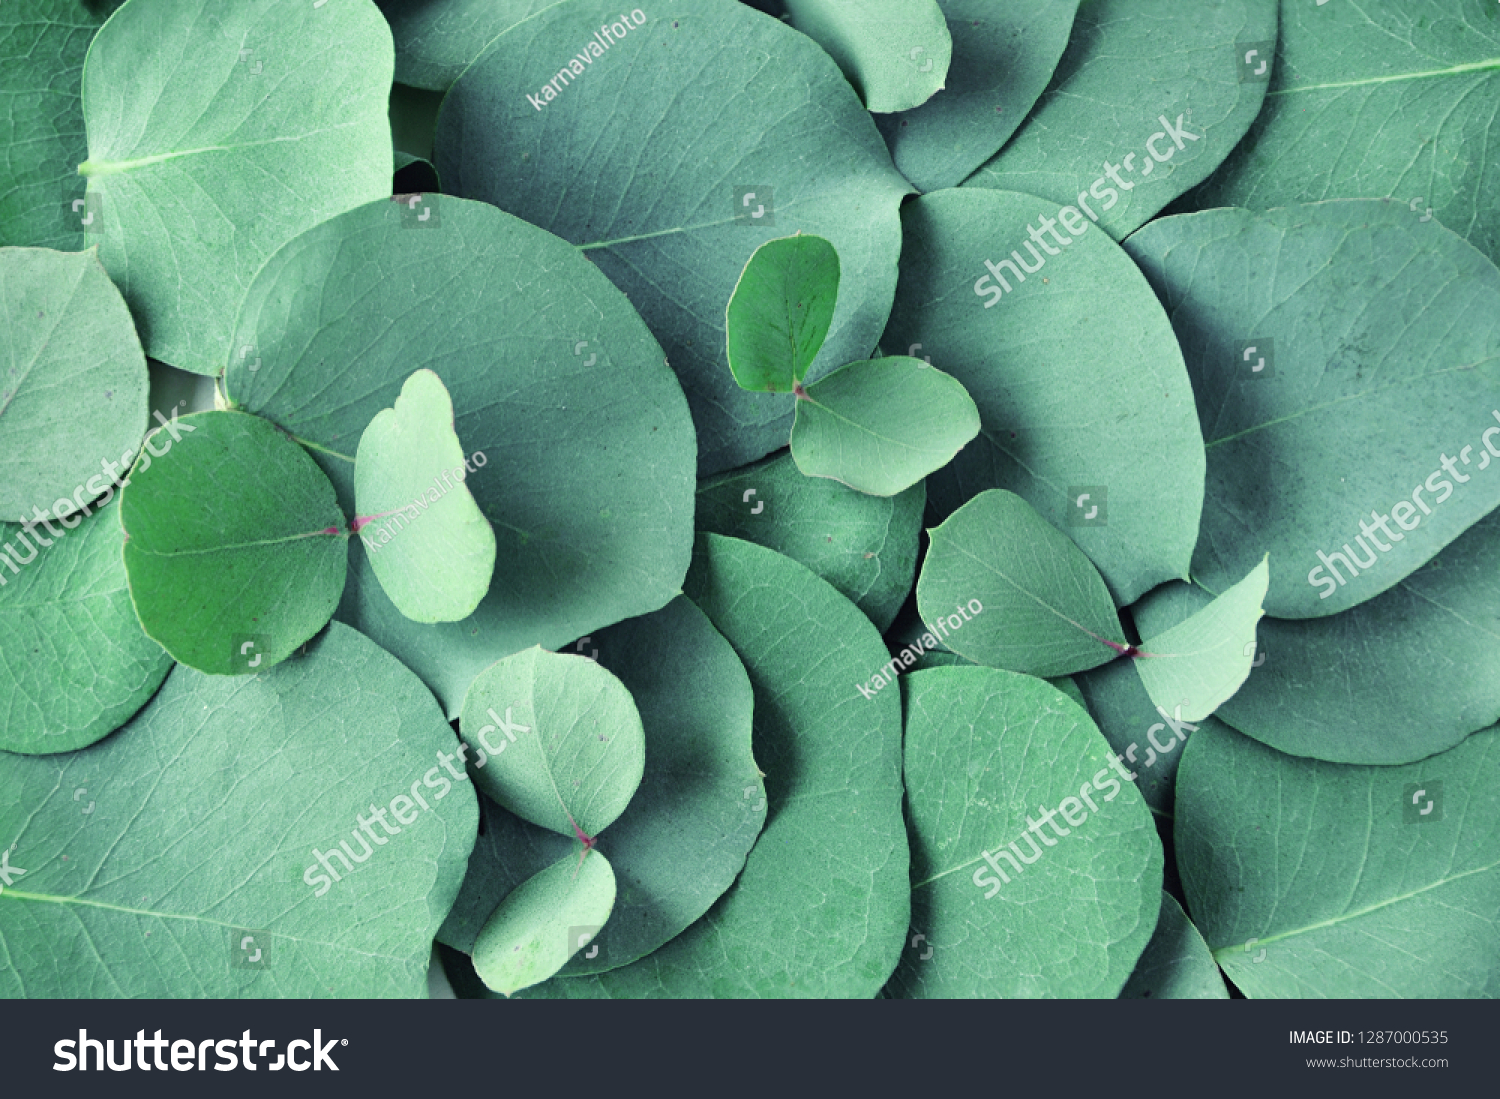 Fresh eucalyptus leaves. Flat lay, top view. Nature green Eucalyptus leaves  background  #1287000535